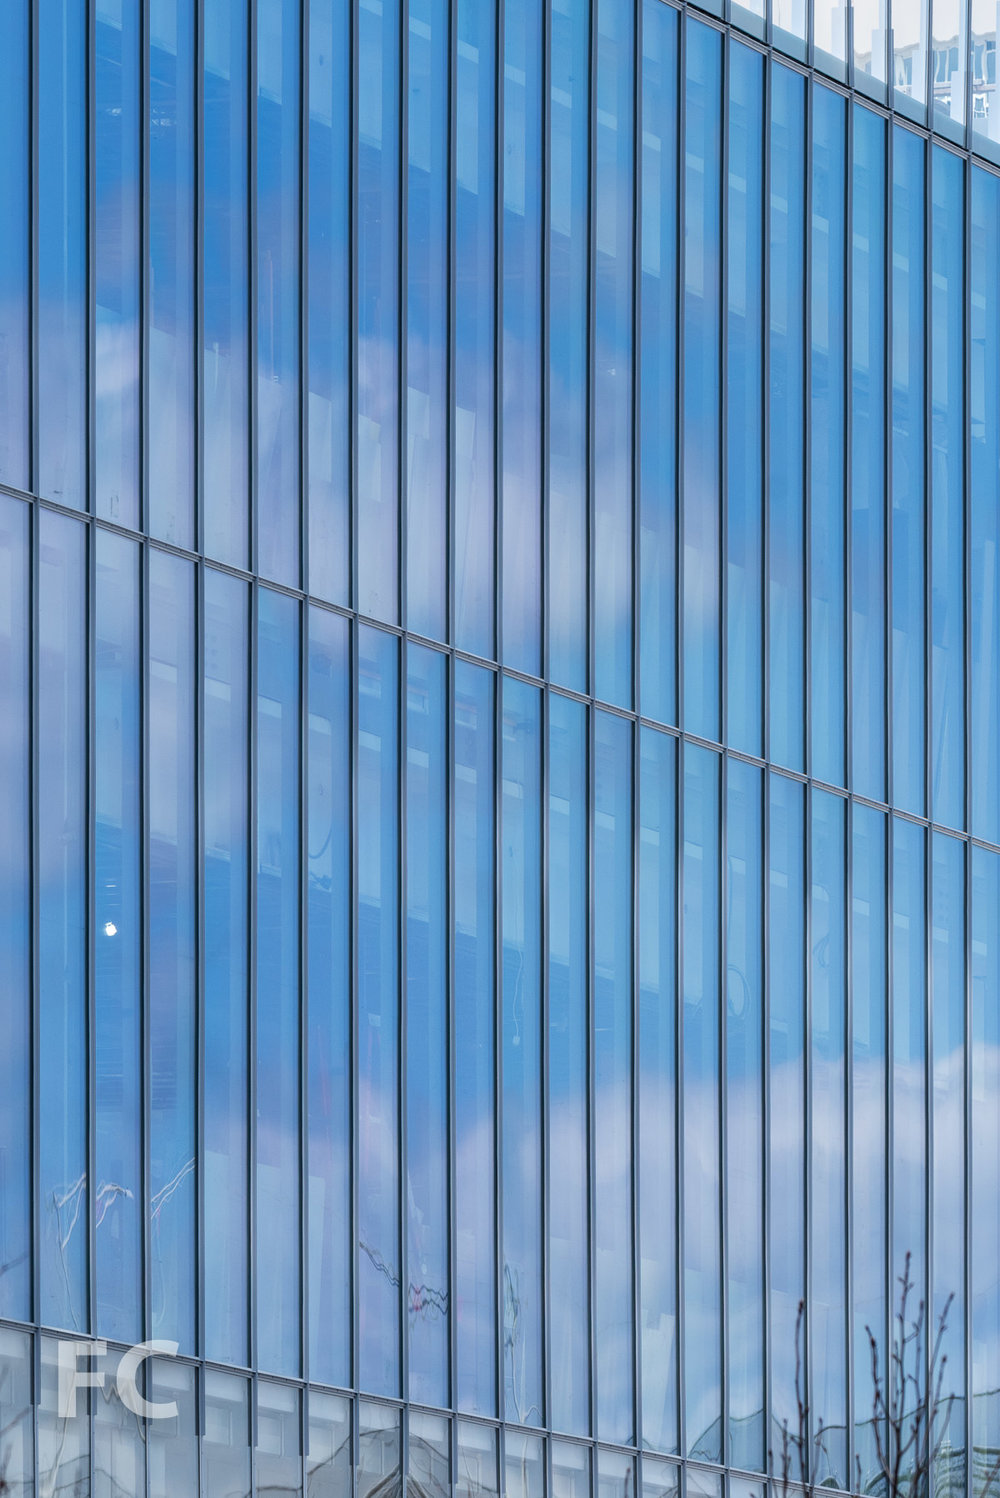 Glass curtain wall facade close-up.